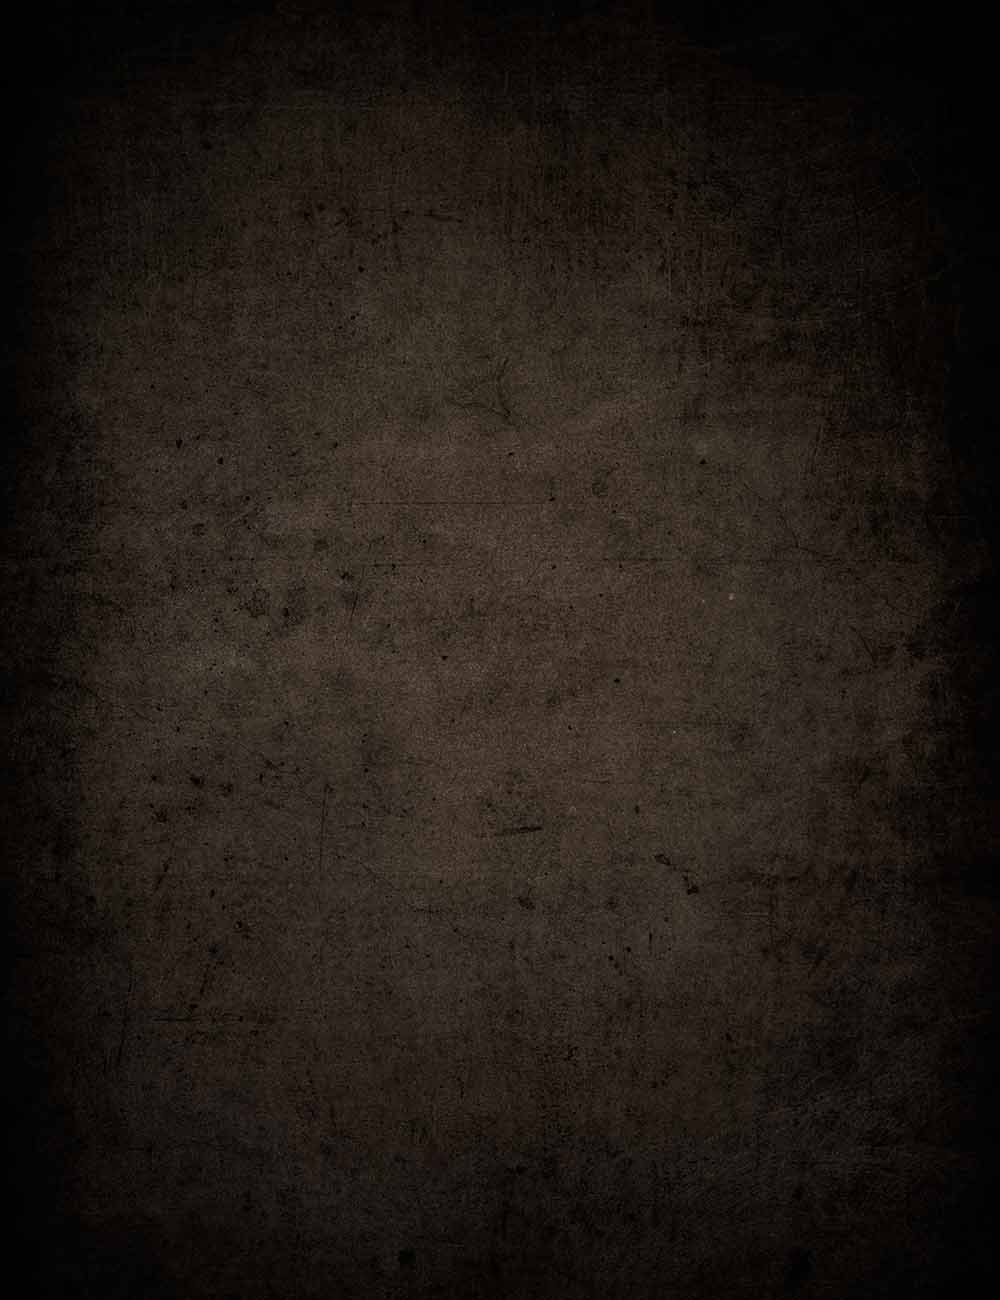 Abstract Coffee Dark Around Edges Photography Backdrop - Shop Backdrop